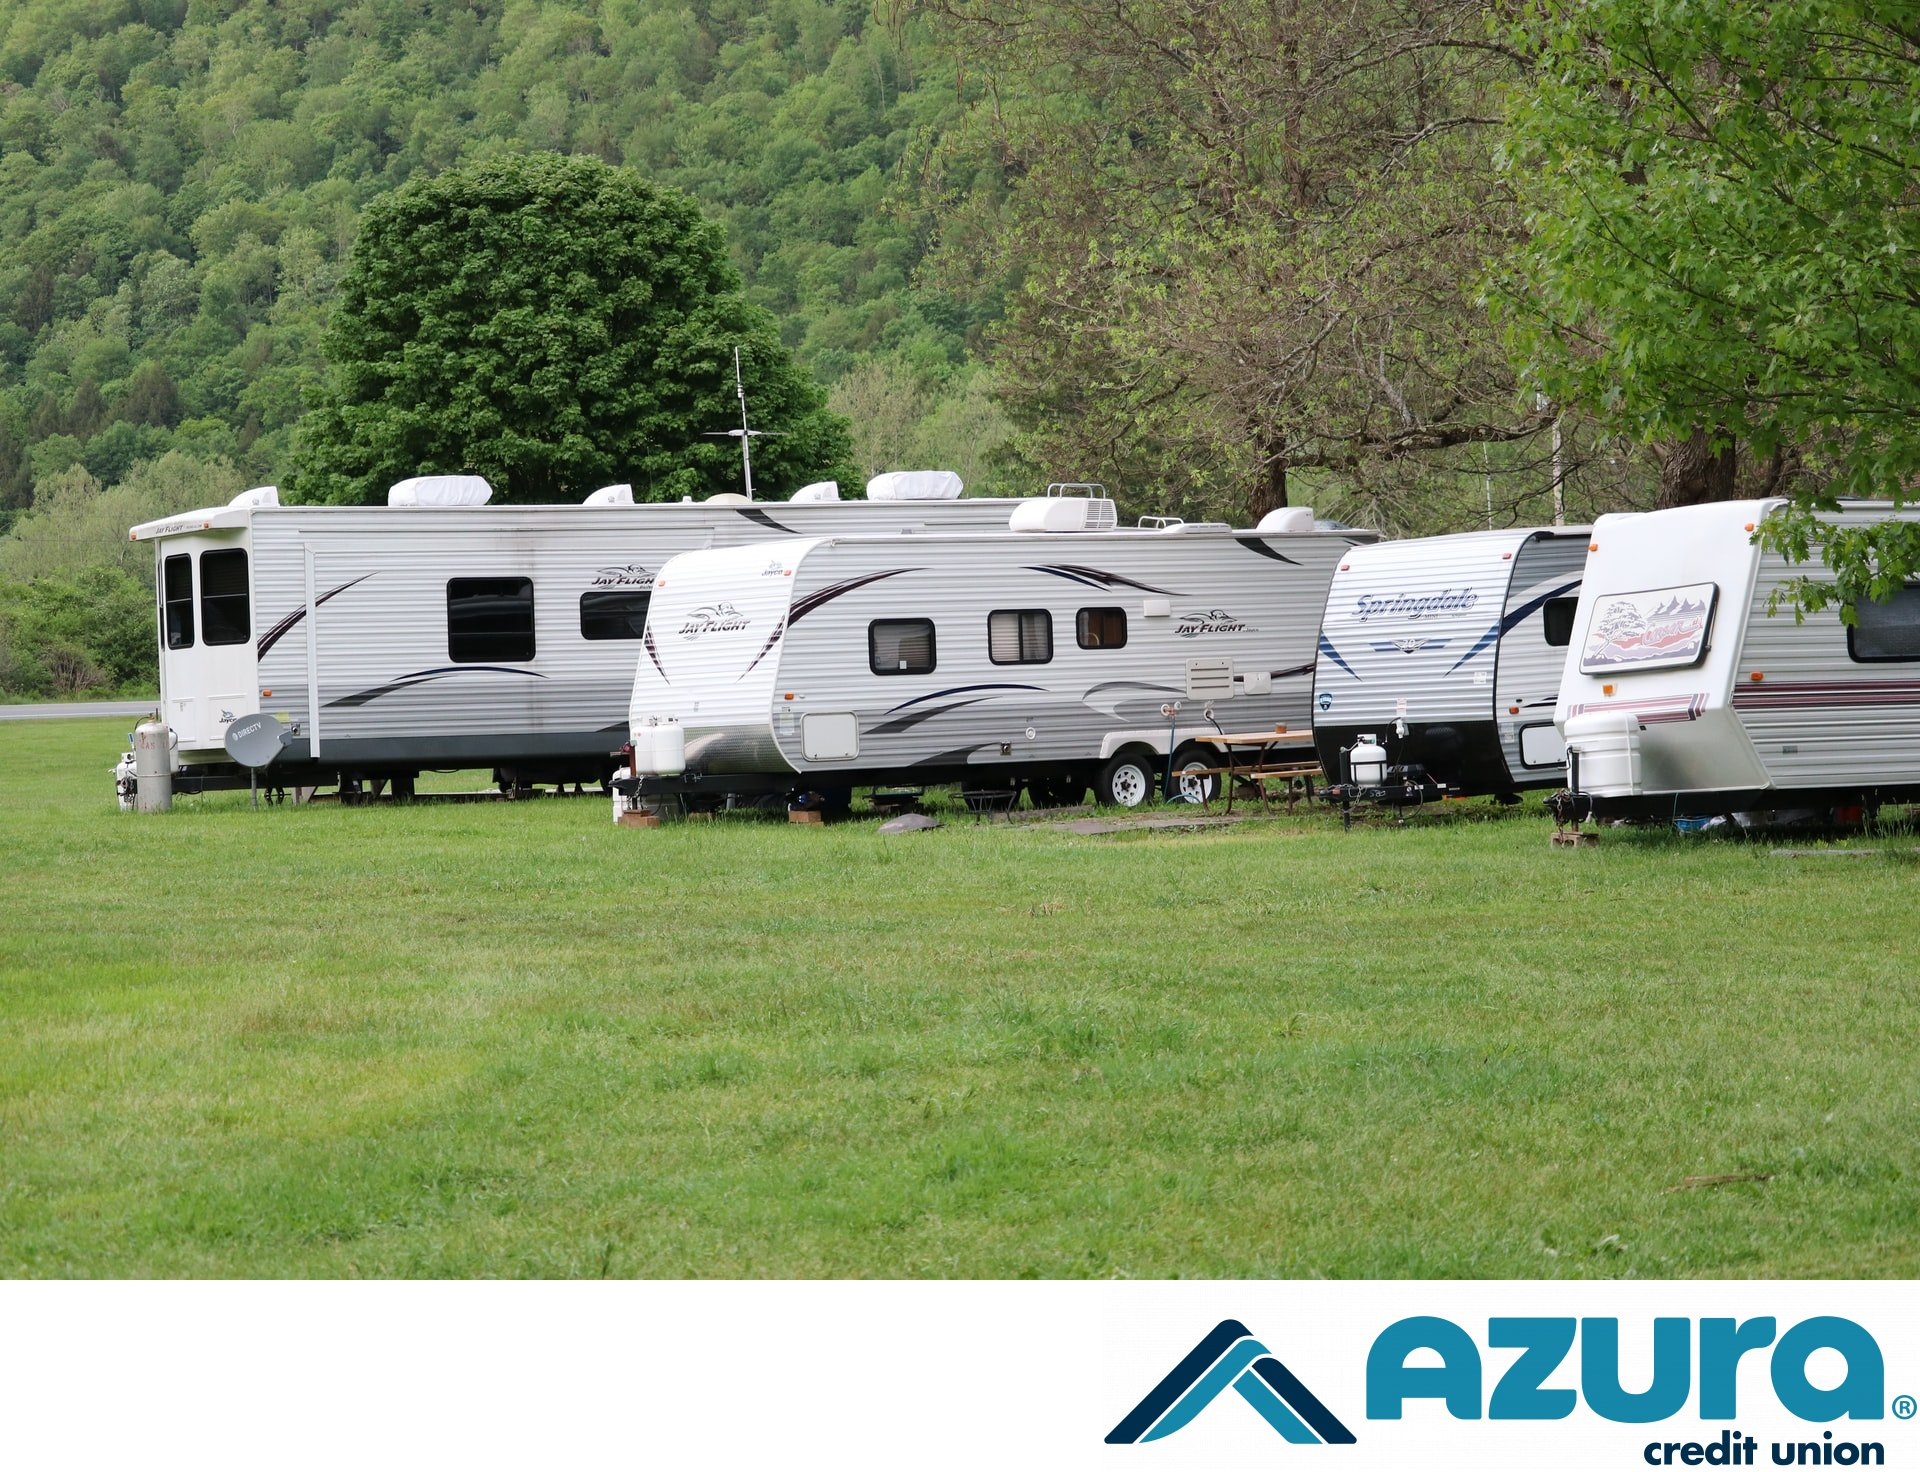 Q&A: What do I need to know to buy an RV?